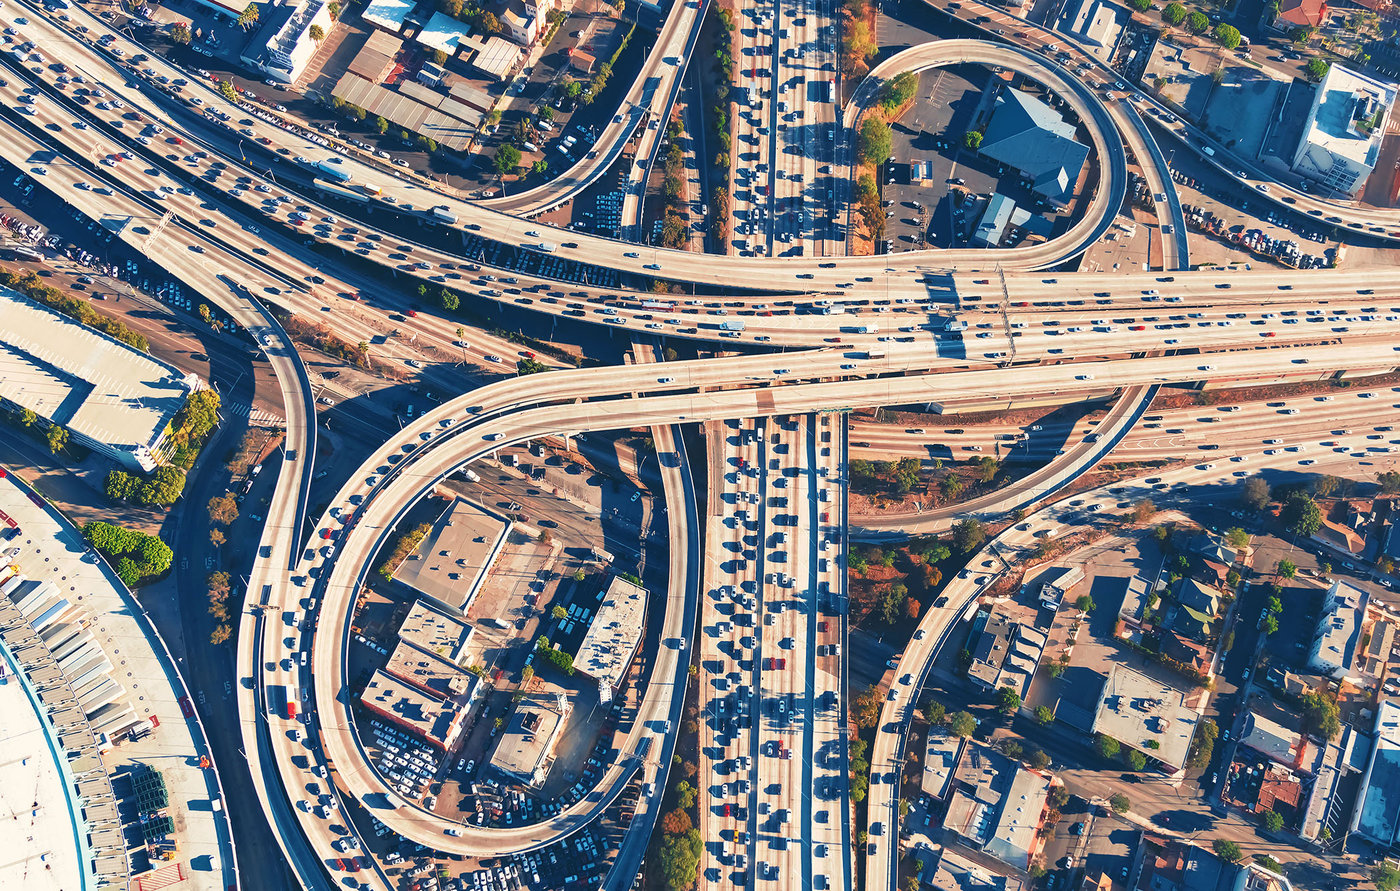 NO PASSING ZONE: AMERICA'S INFRASTRUCTURE